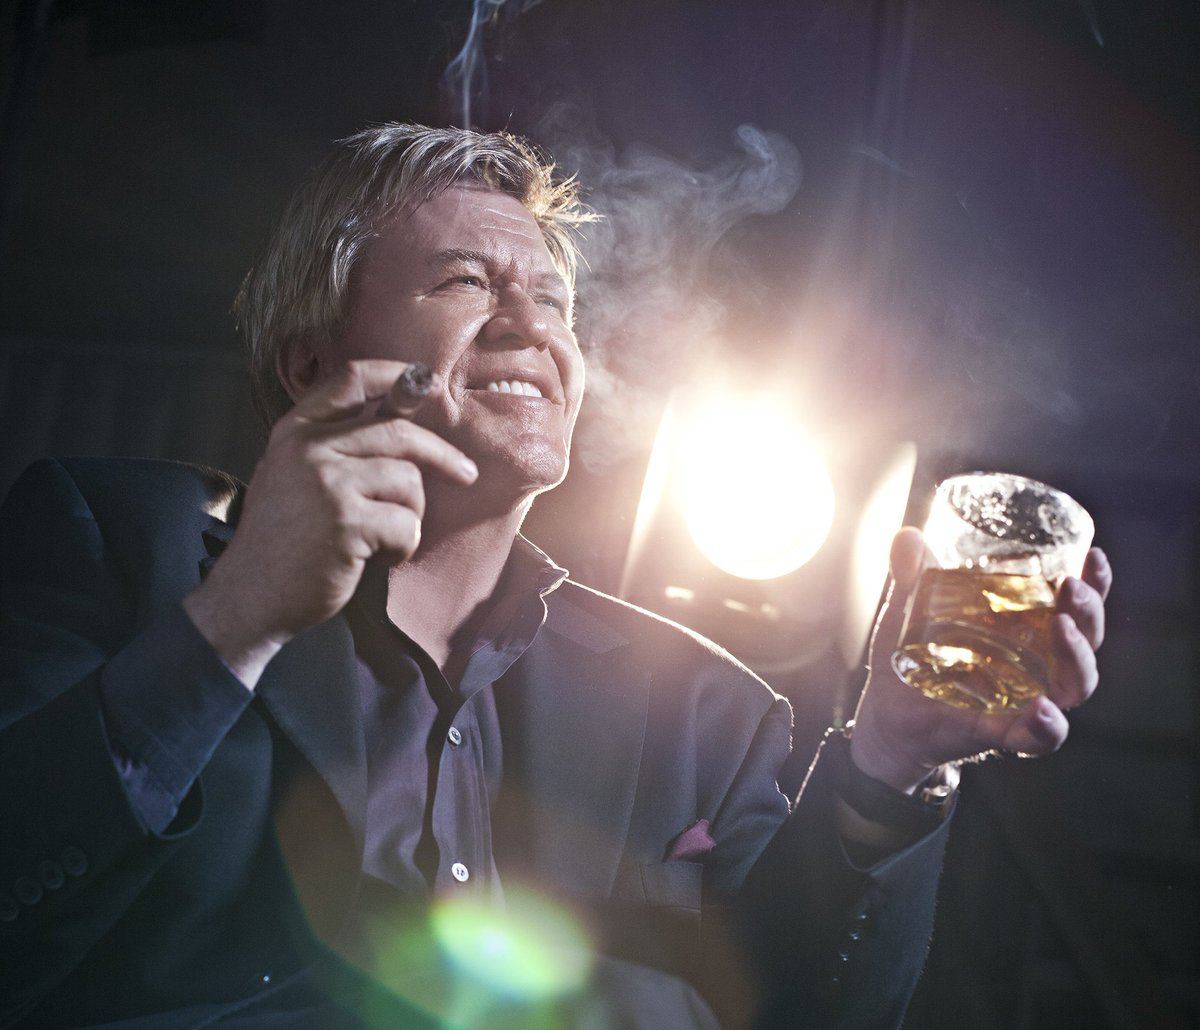 Start 2017 off right with @Ron_White! Retweet 'til 10PM for your chance to win 2 VIP tickets! Ready...set...go! https://t.co/K1wyMZxXH4